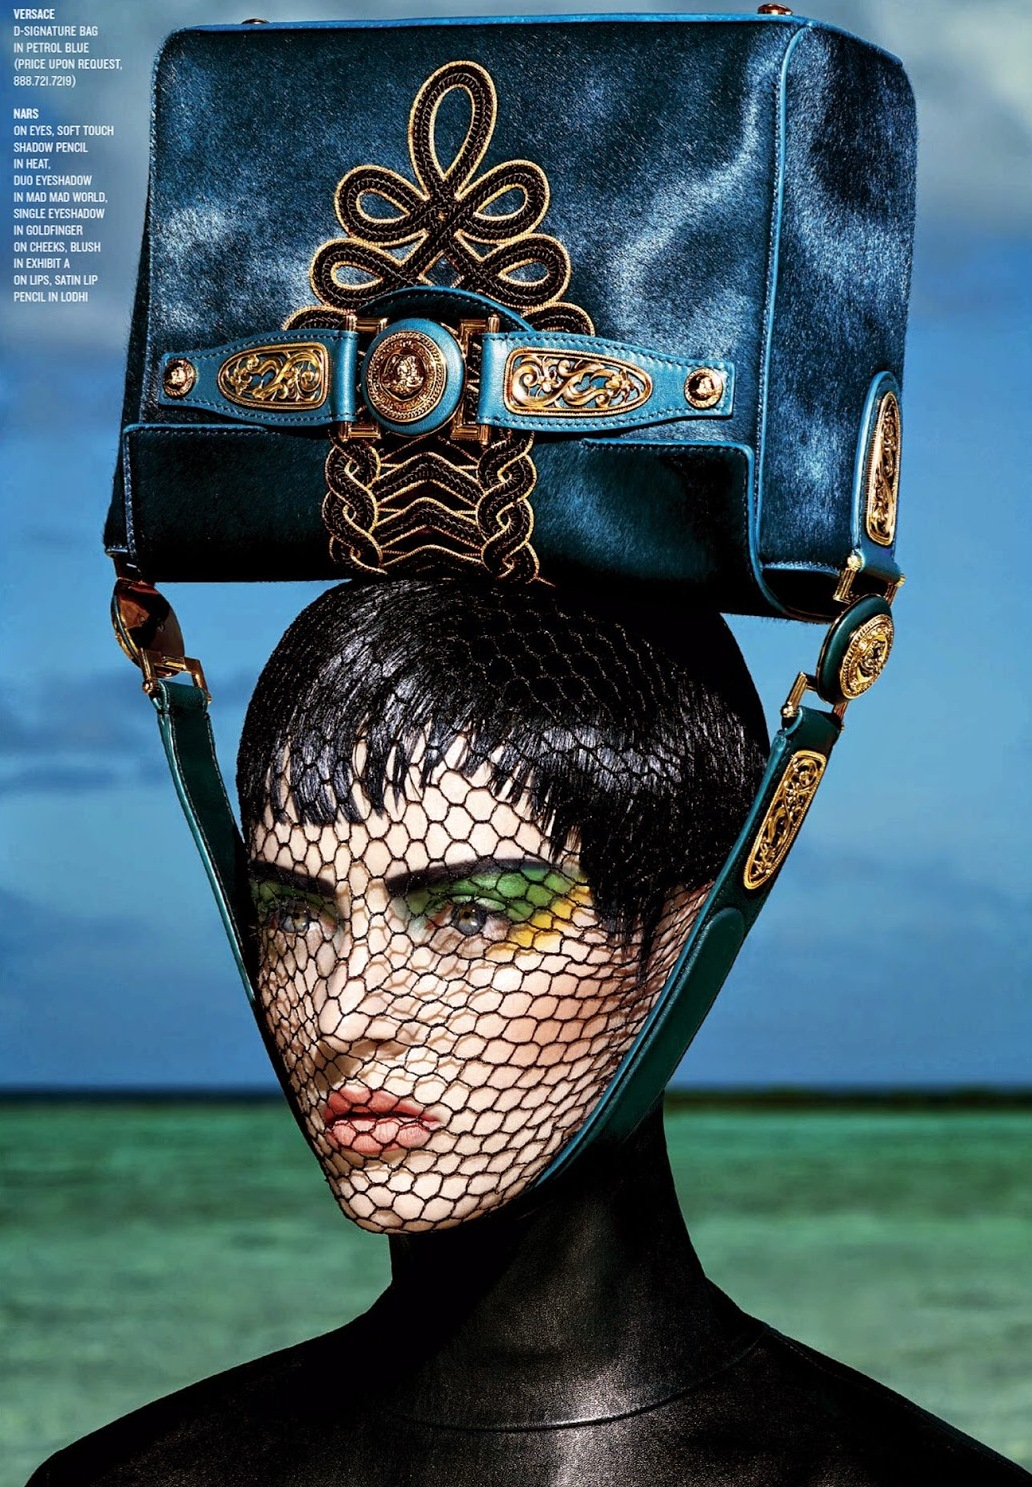 Daria-Strokous-by-Francois-Nars-for-V-Magazine-91-Fall-2014-1